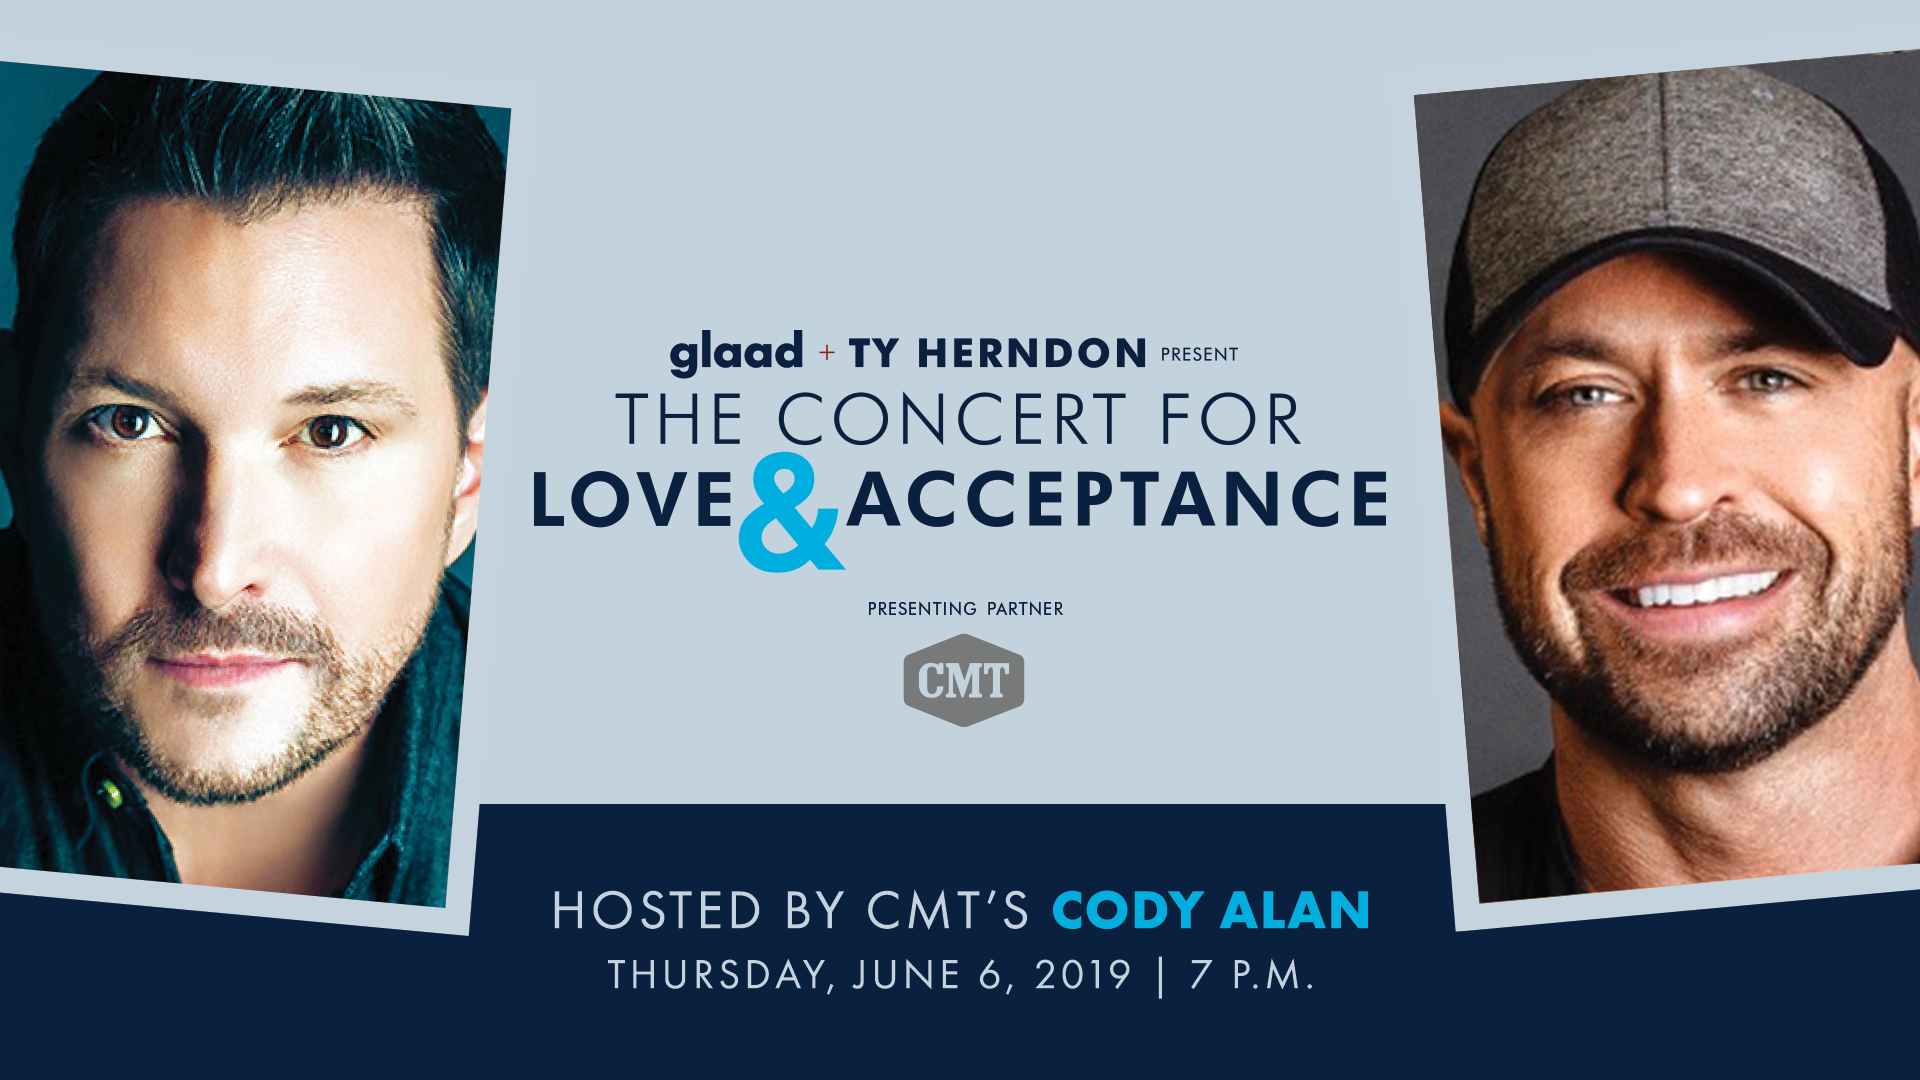 Nashville: The Concert for Love & Acceptance 2019